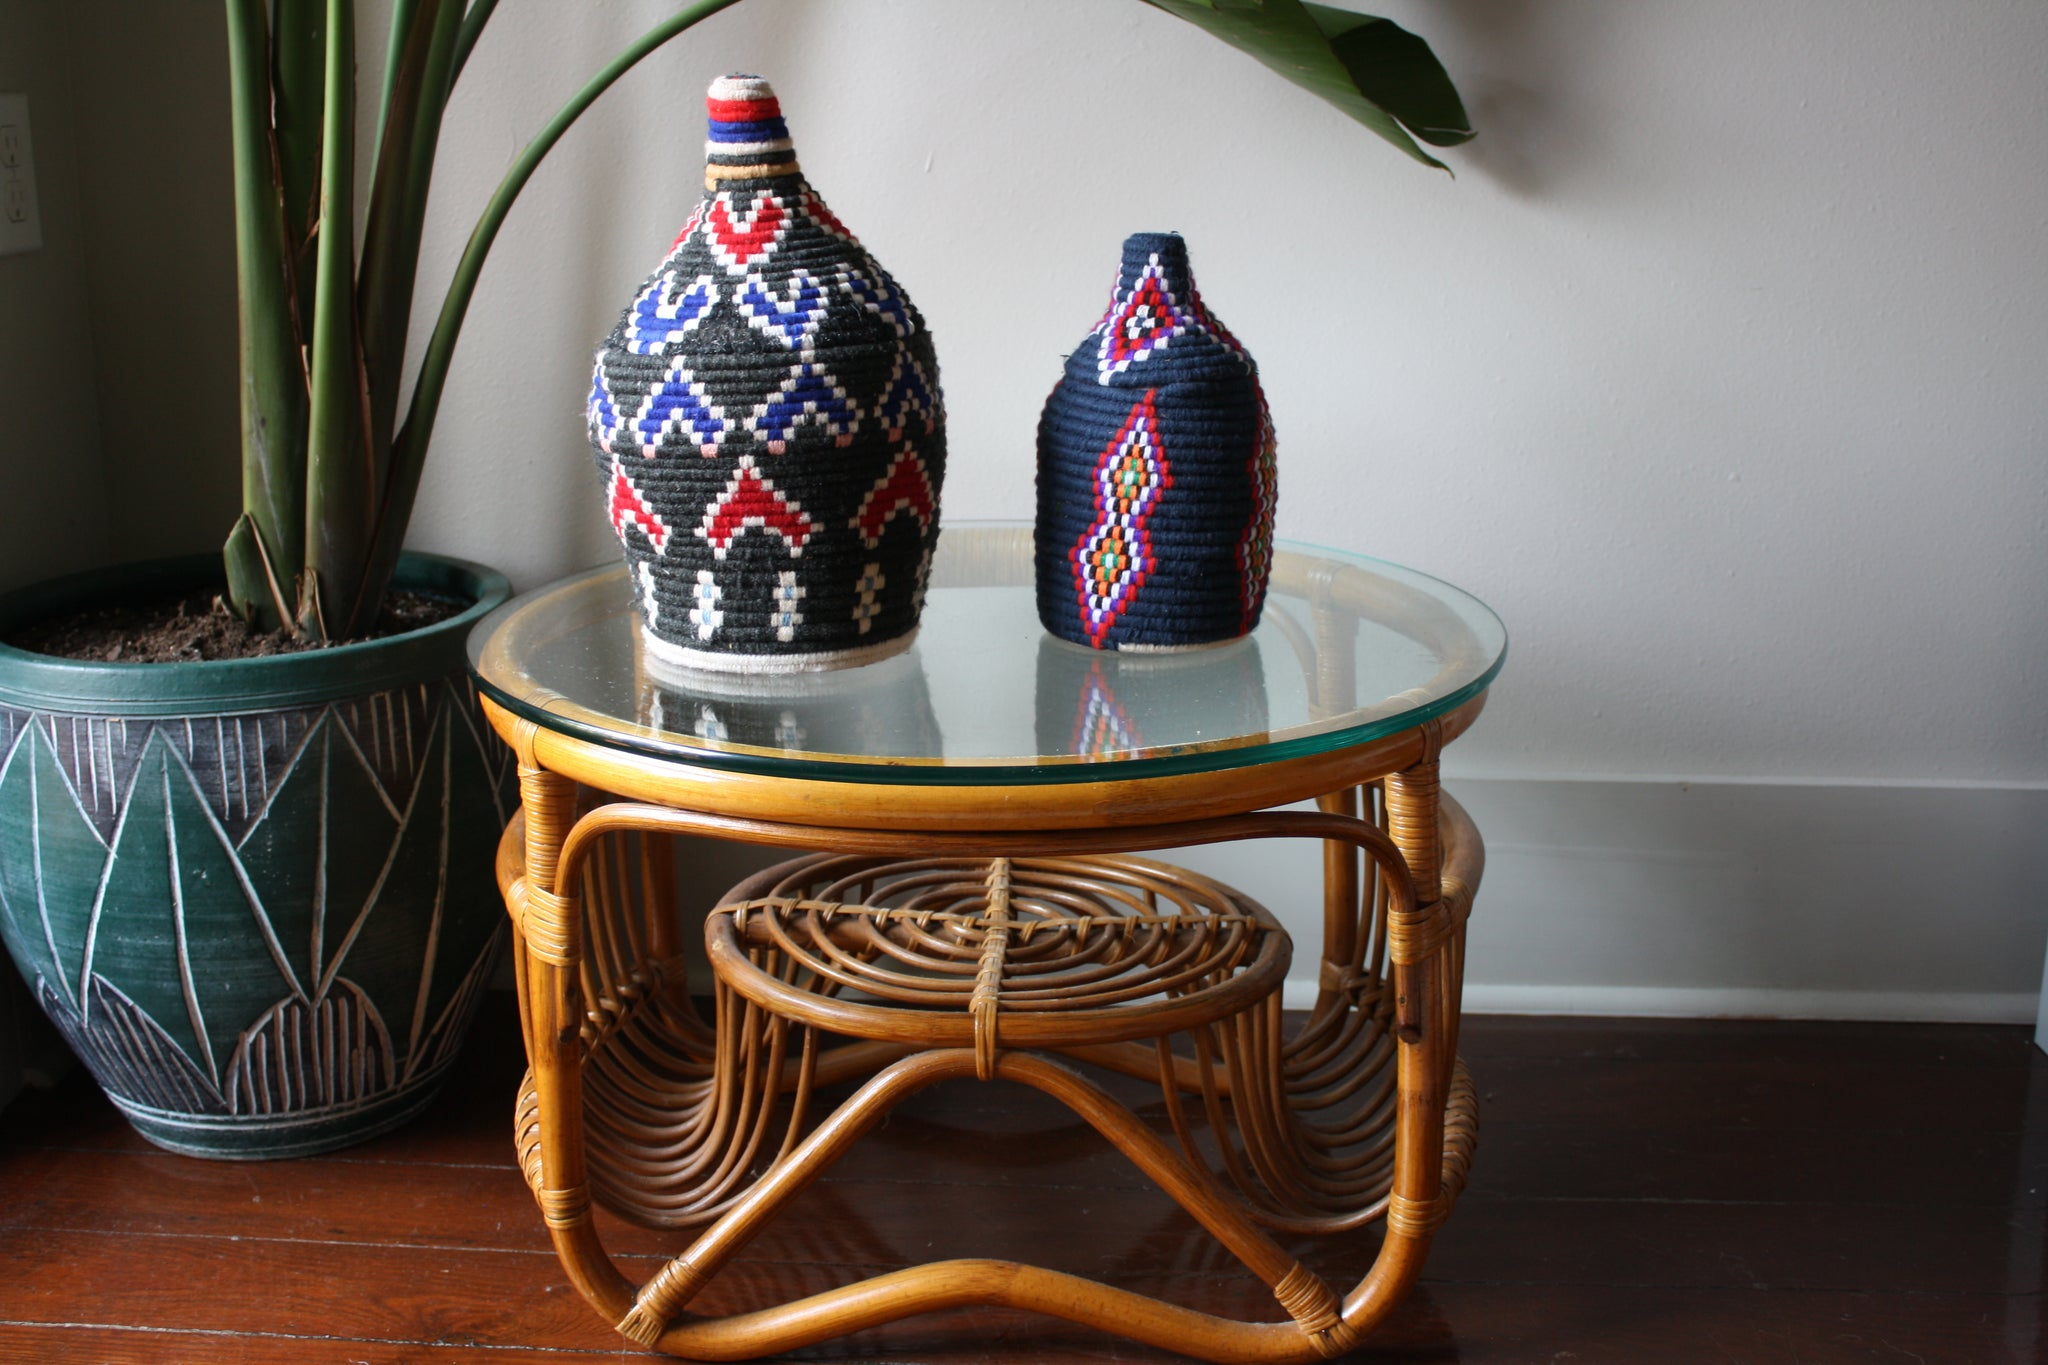 Set of 2 Moroccan baskets